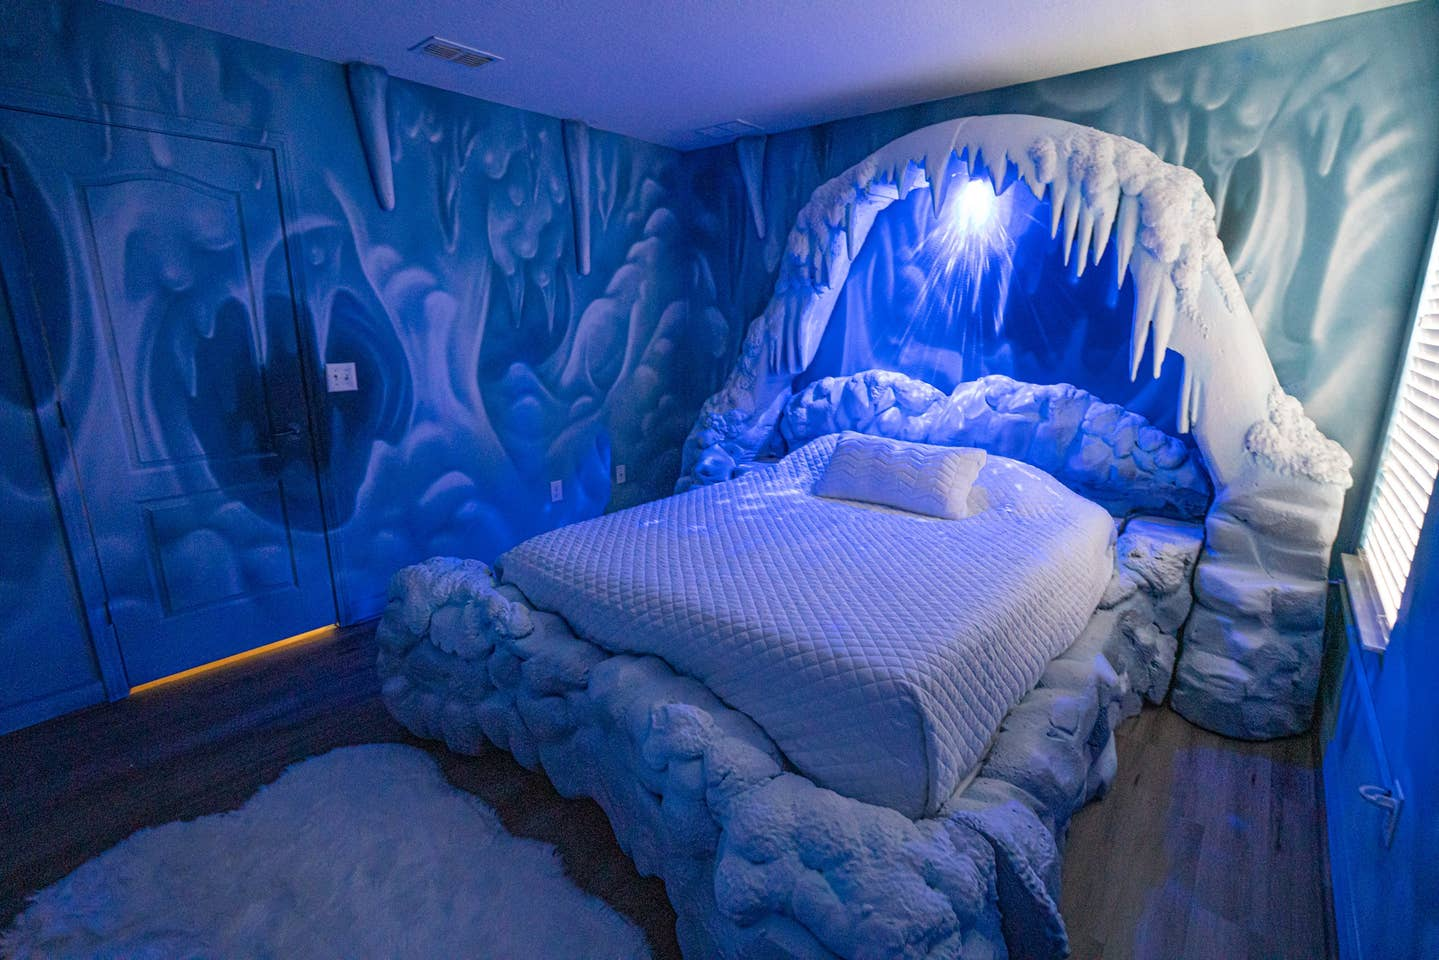 star wars airbnb bedroom decorated to look like Hoth